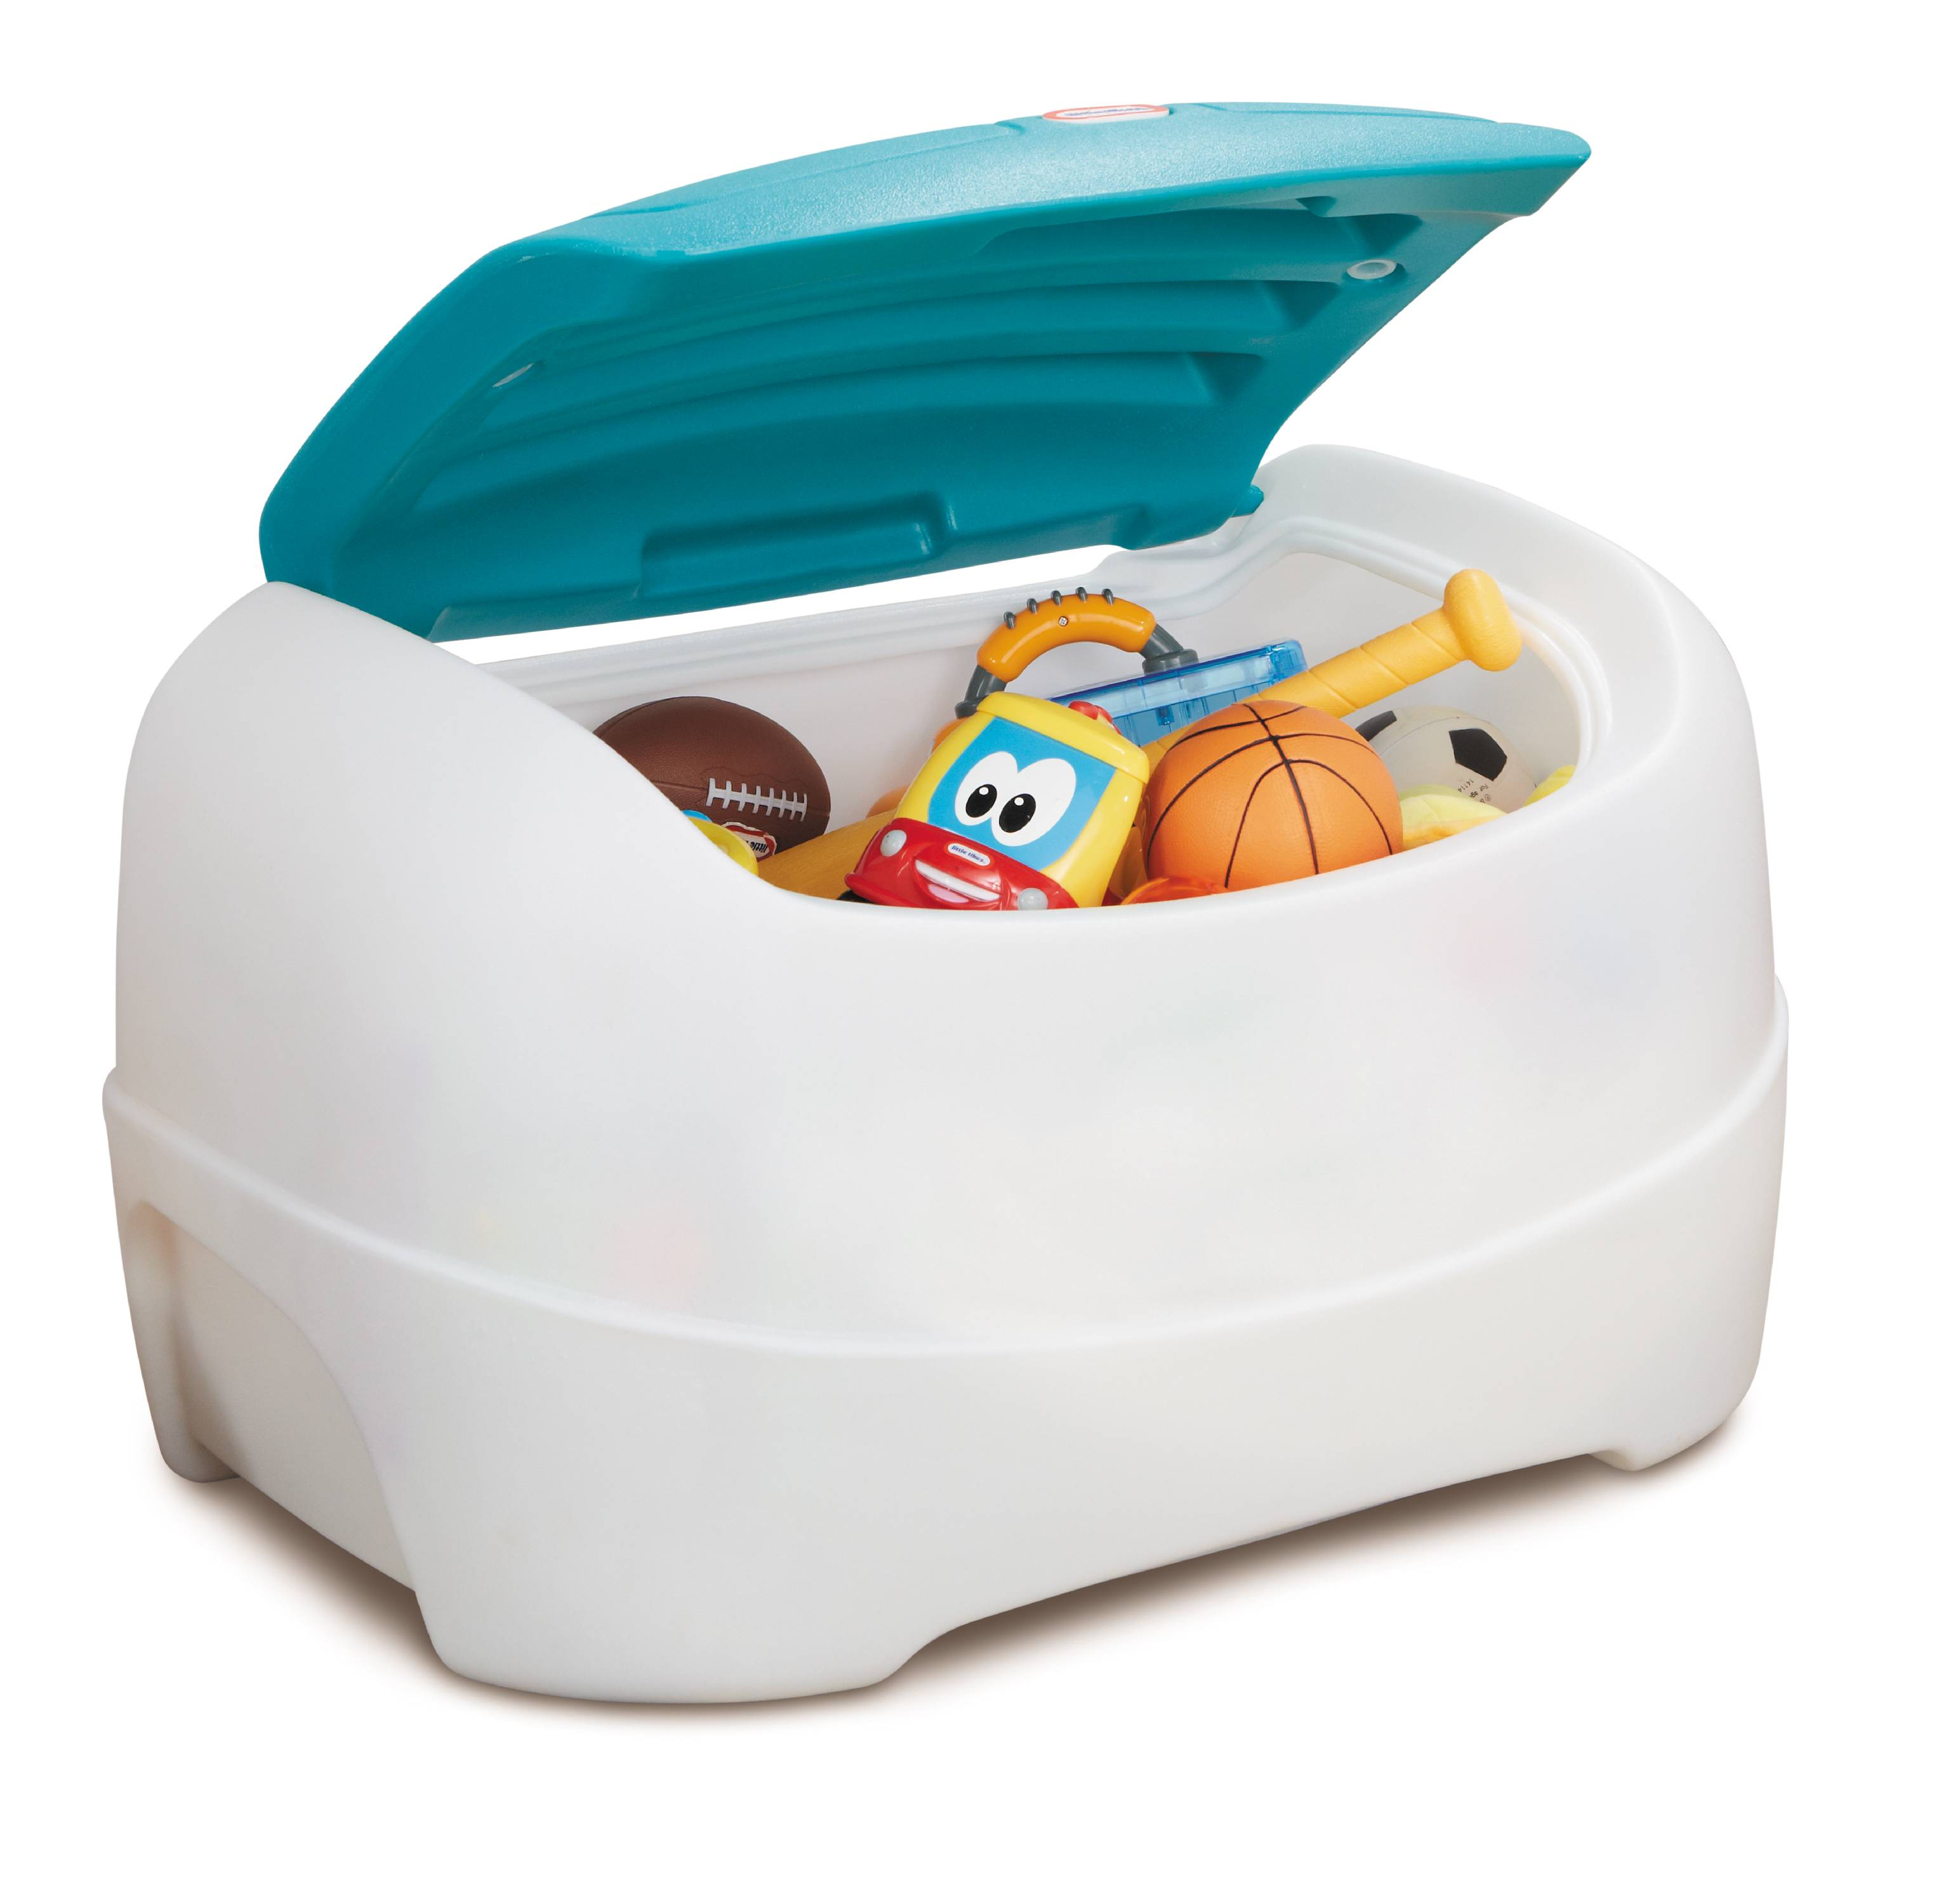 Little Tikes Play 'n Store Toy Chest by Little Tikes